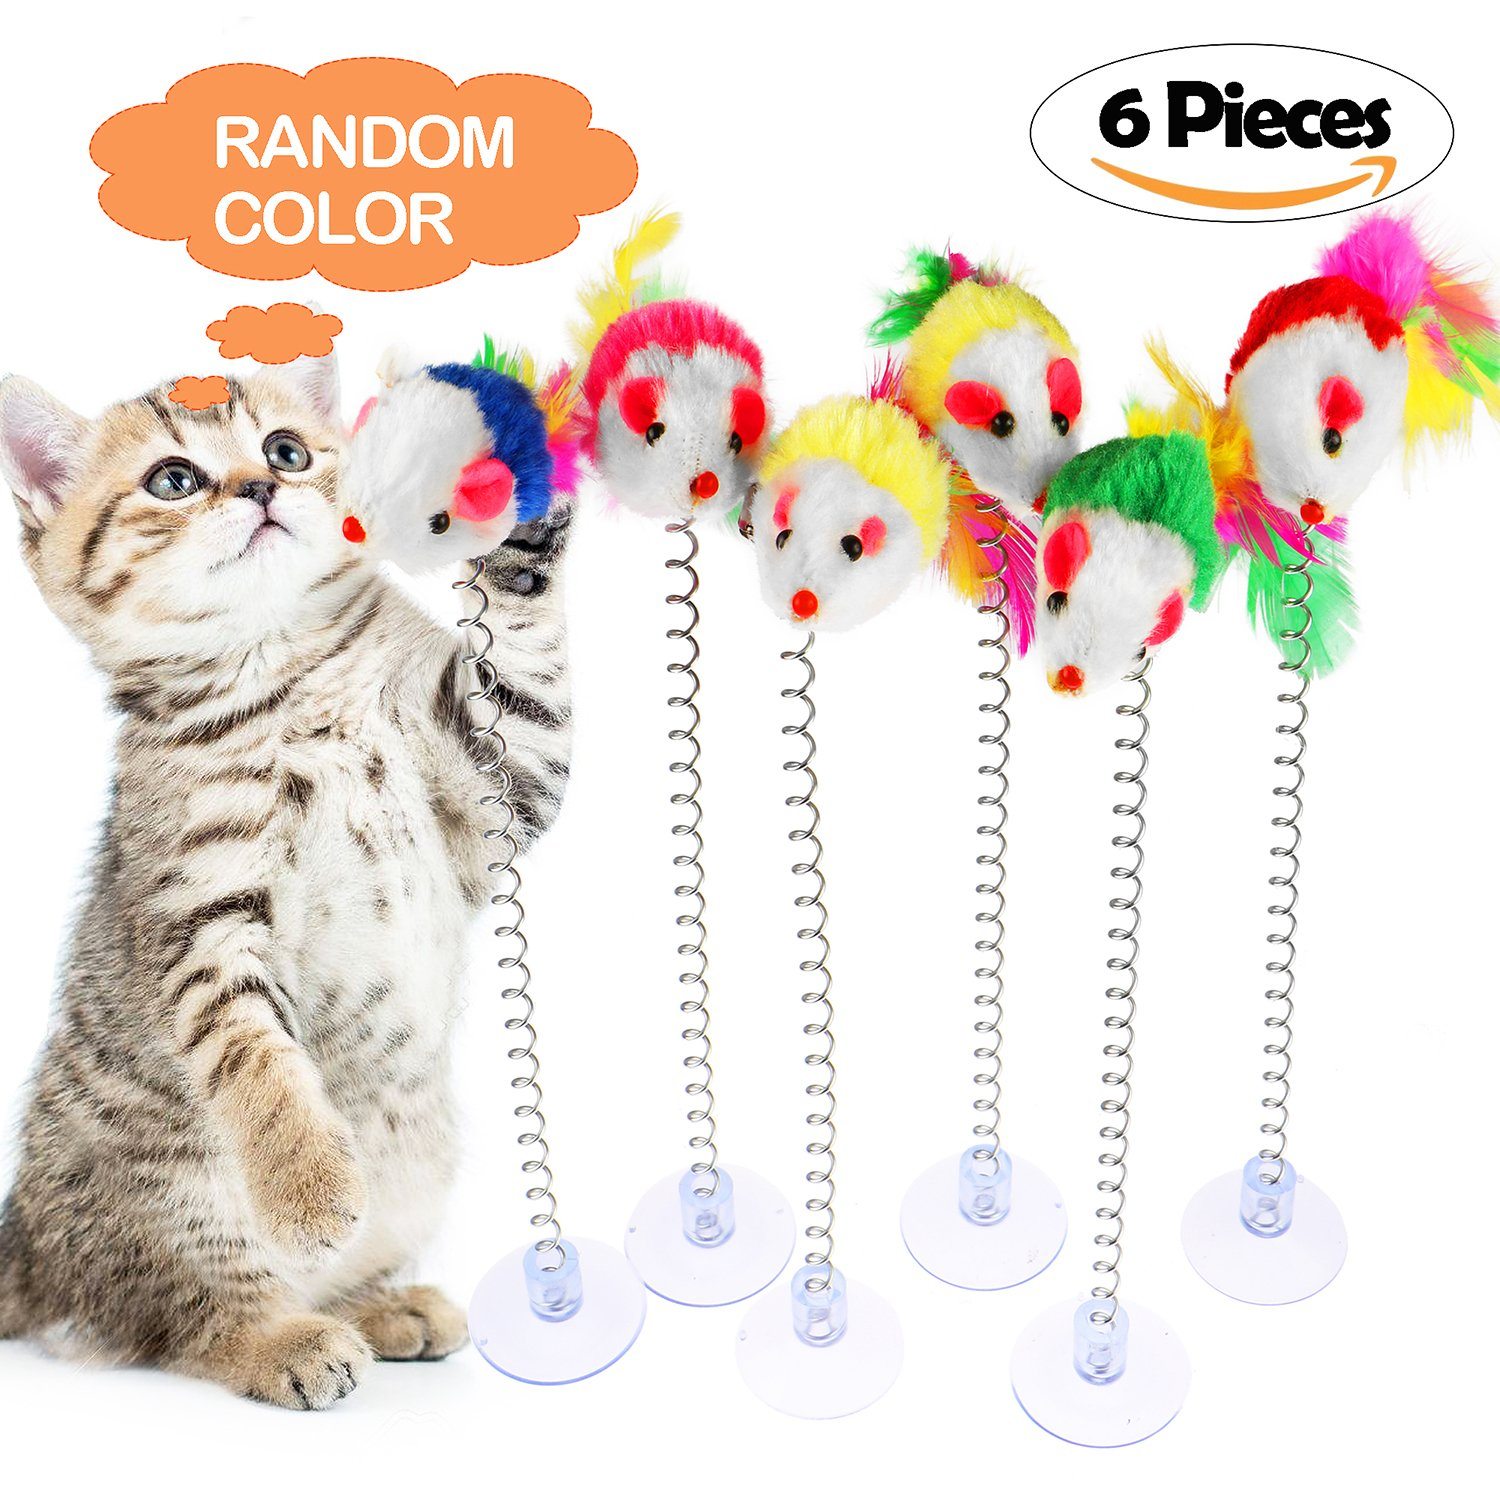 Tacobear Retractable Cat Toys Interactive Feather Teaser Wand Toy Fluffy Mouse Balls Catnip for Cats Kitten